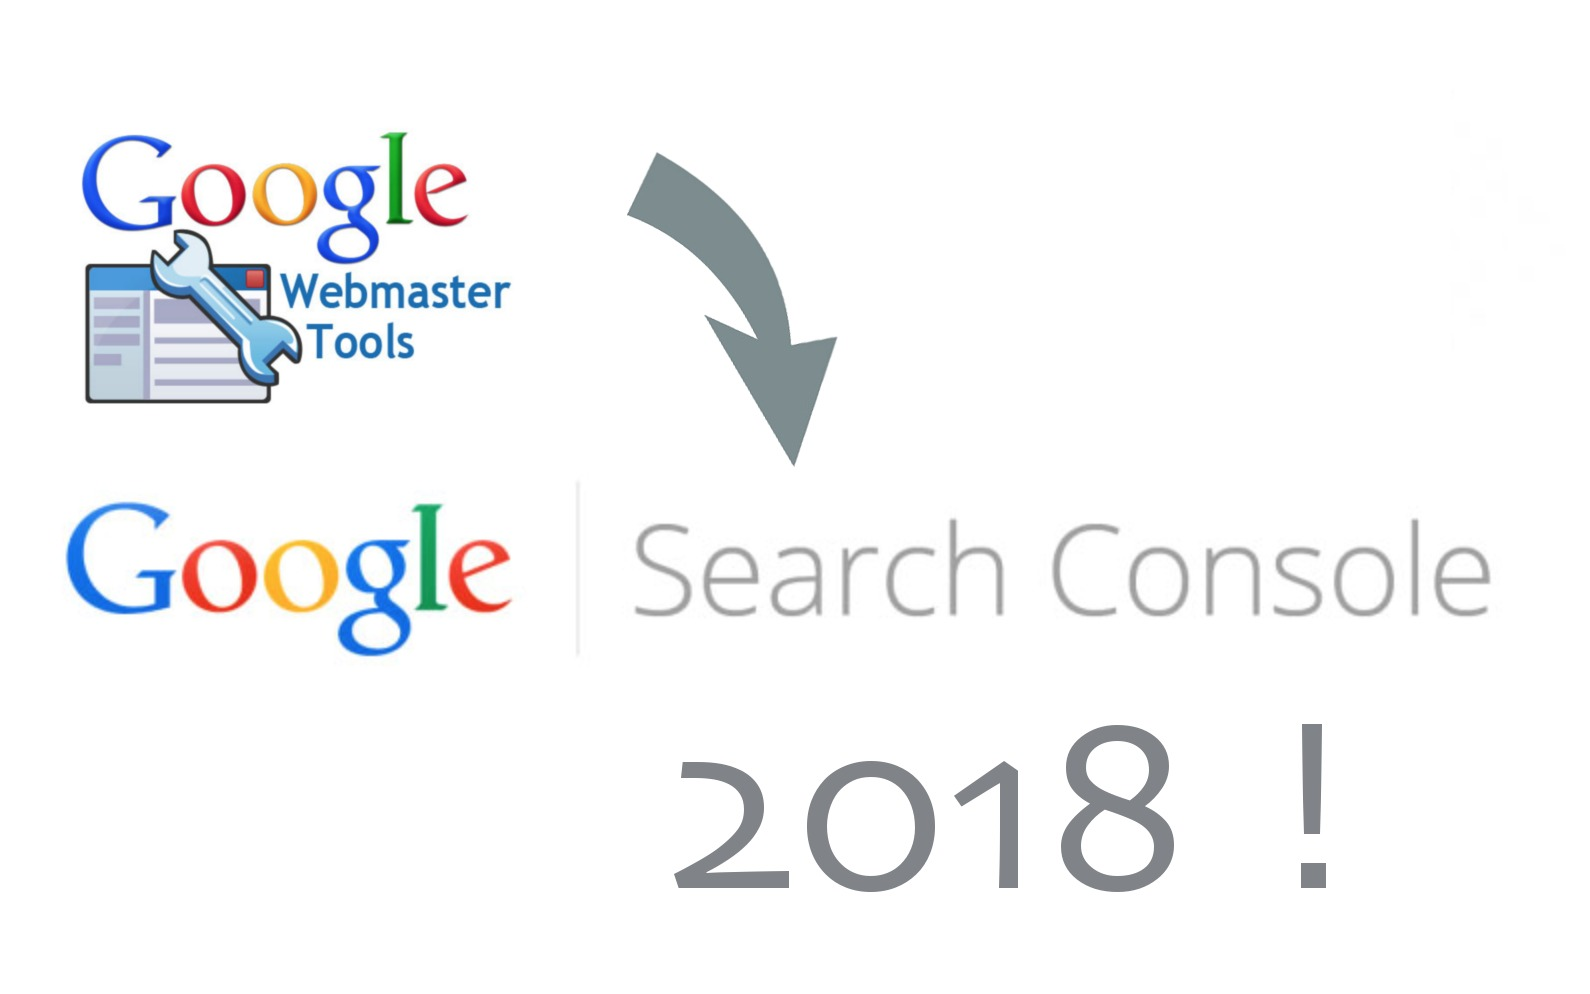 Google Search Console Webmaster Tool